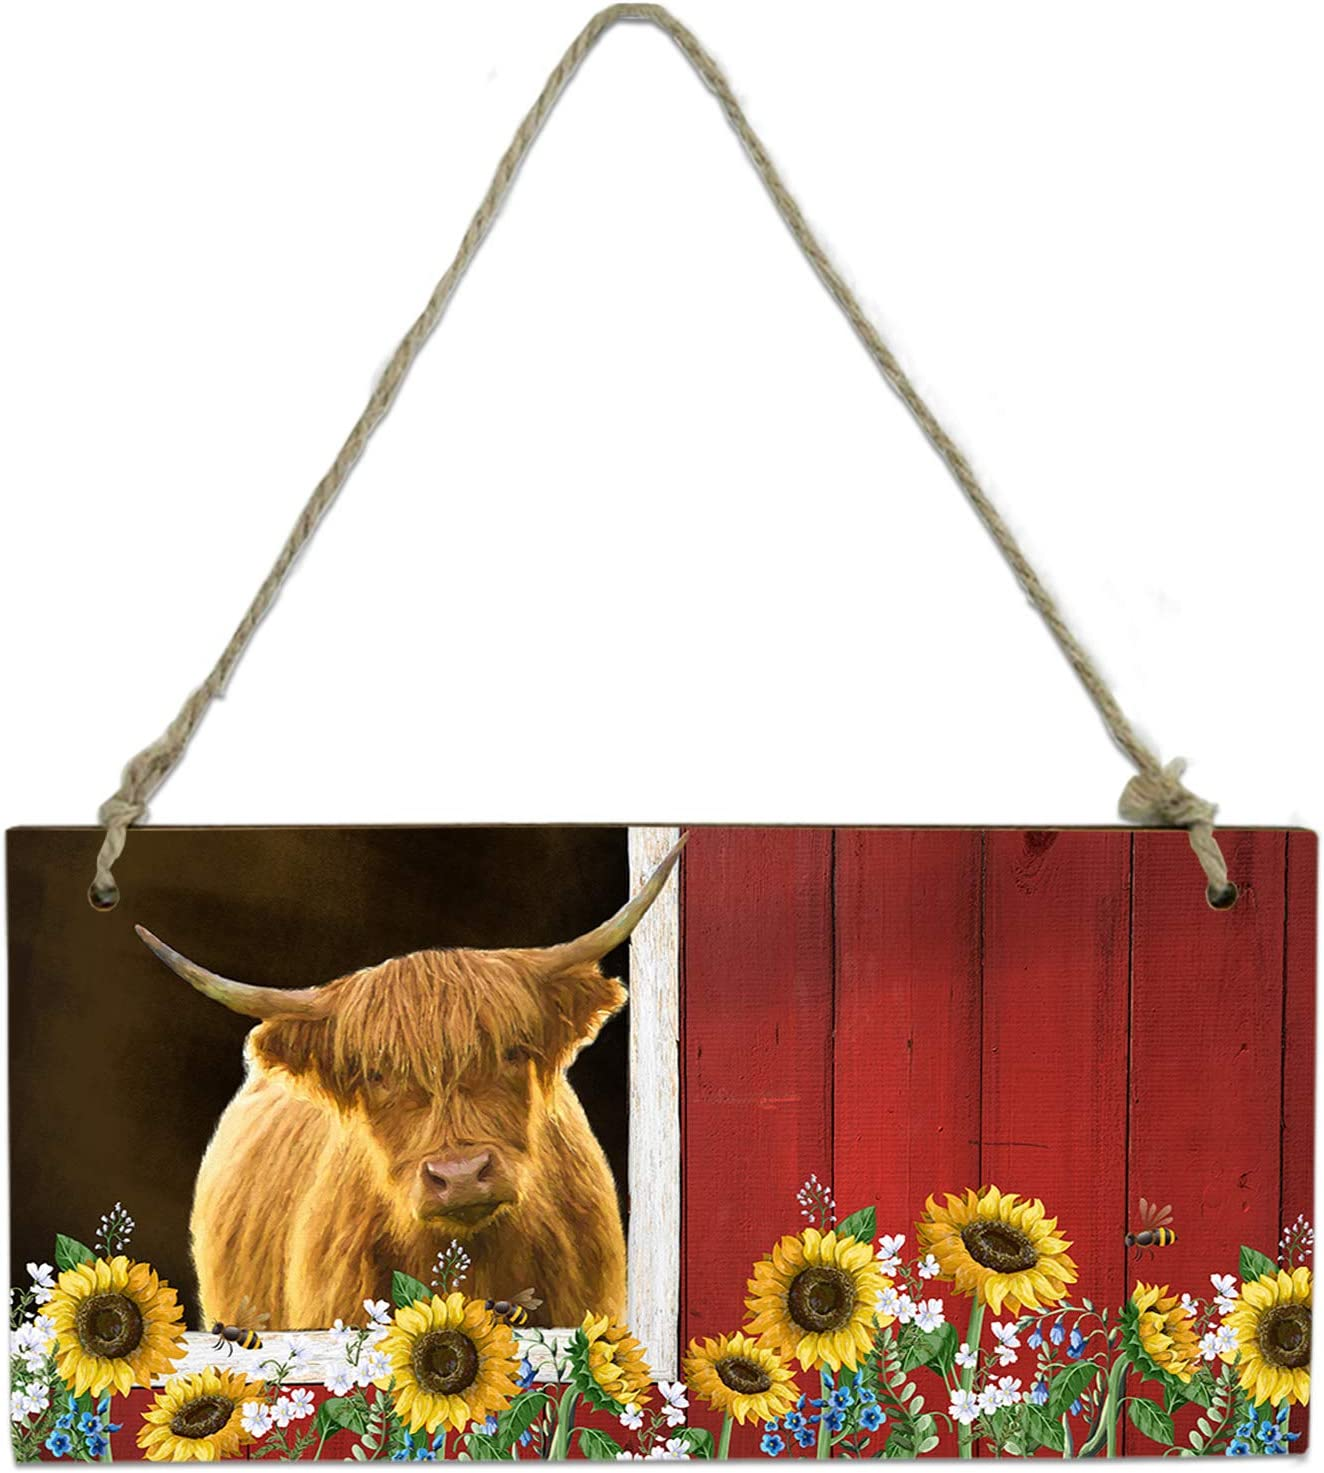 Wood Plaque Wall Hanging Sign Bathroom lowest price for Nashville-Davidson Mall Highland Cow Kitchen